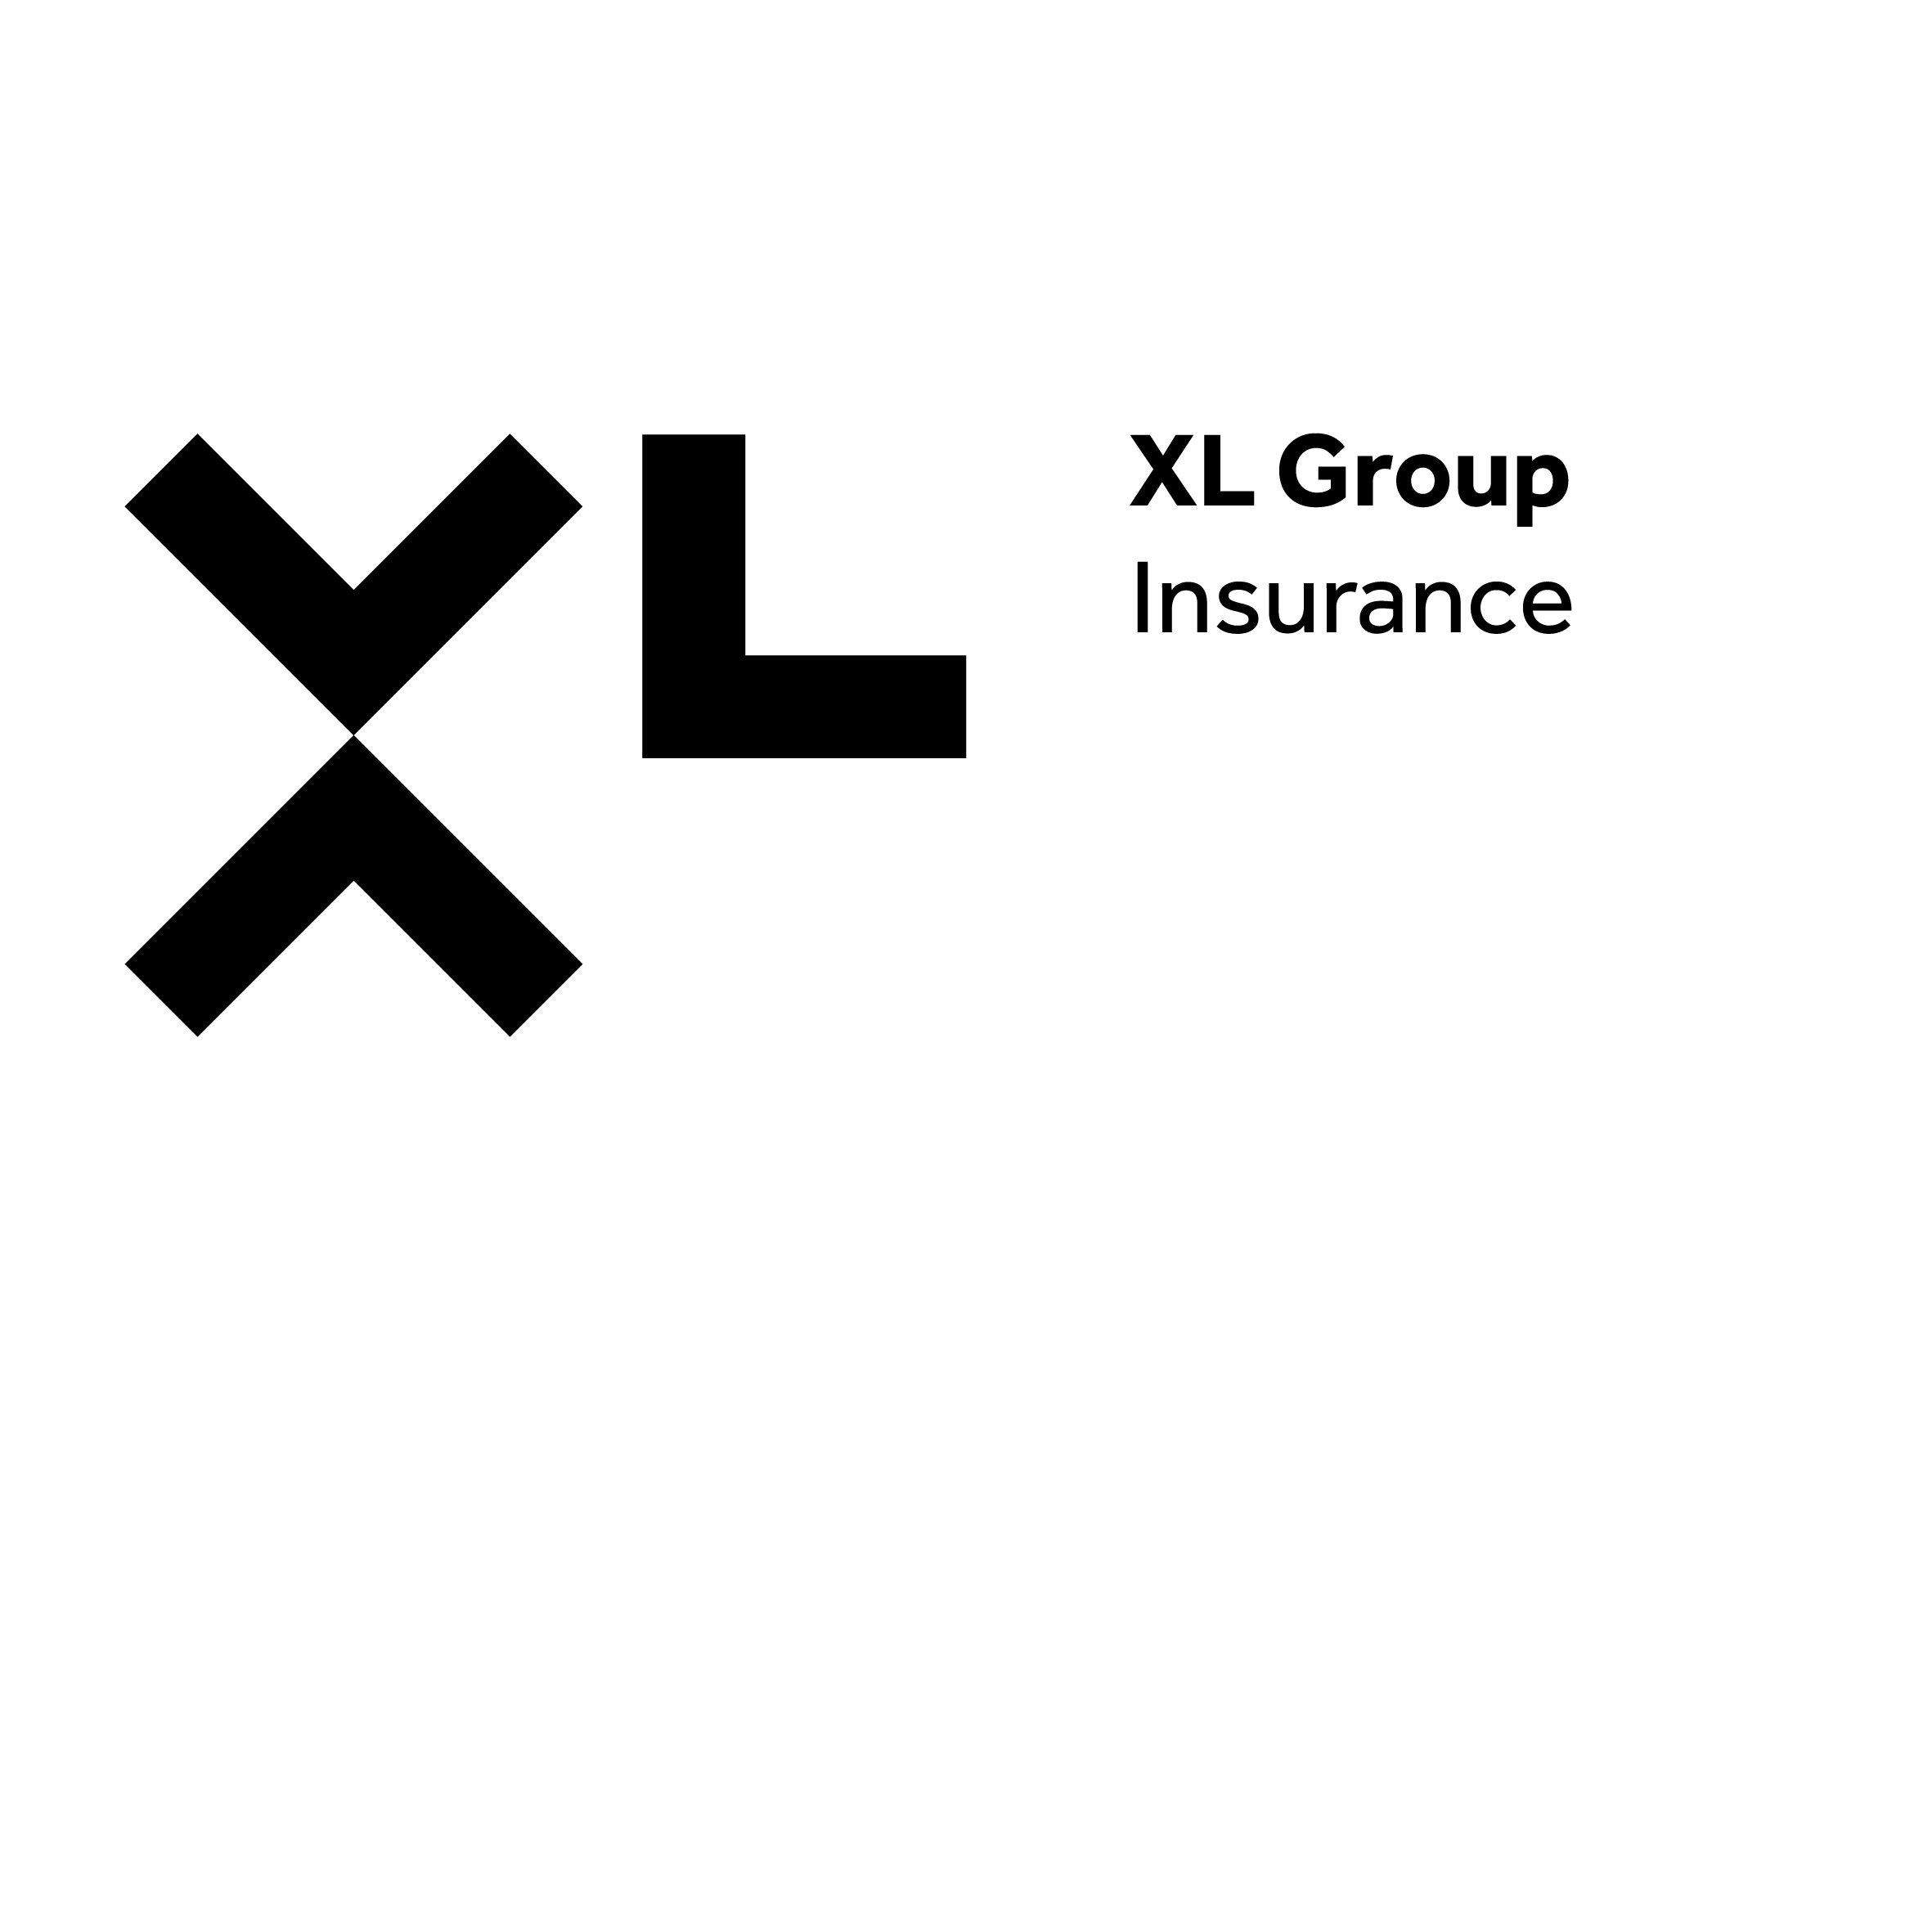 XL Logo  Insurance with text right